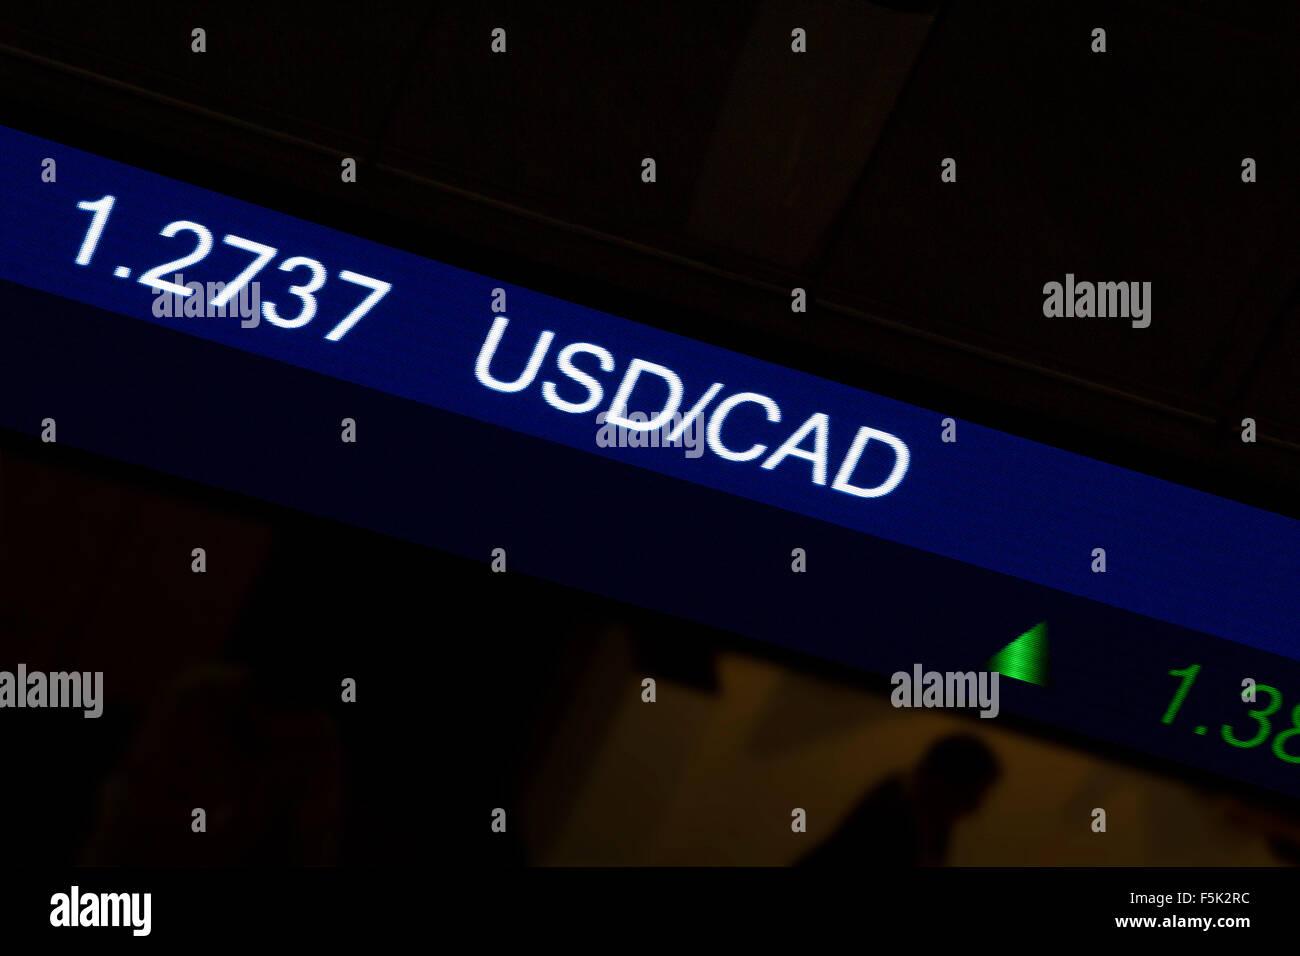 Display stock market charts on blue neon line with blurred office background, American / Canadian currency rate - Stock Image